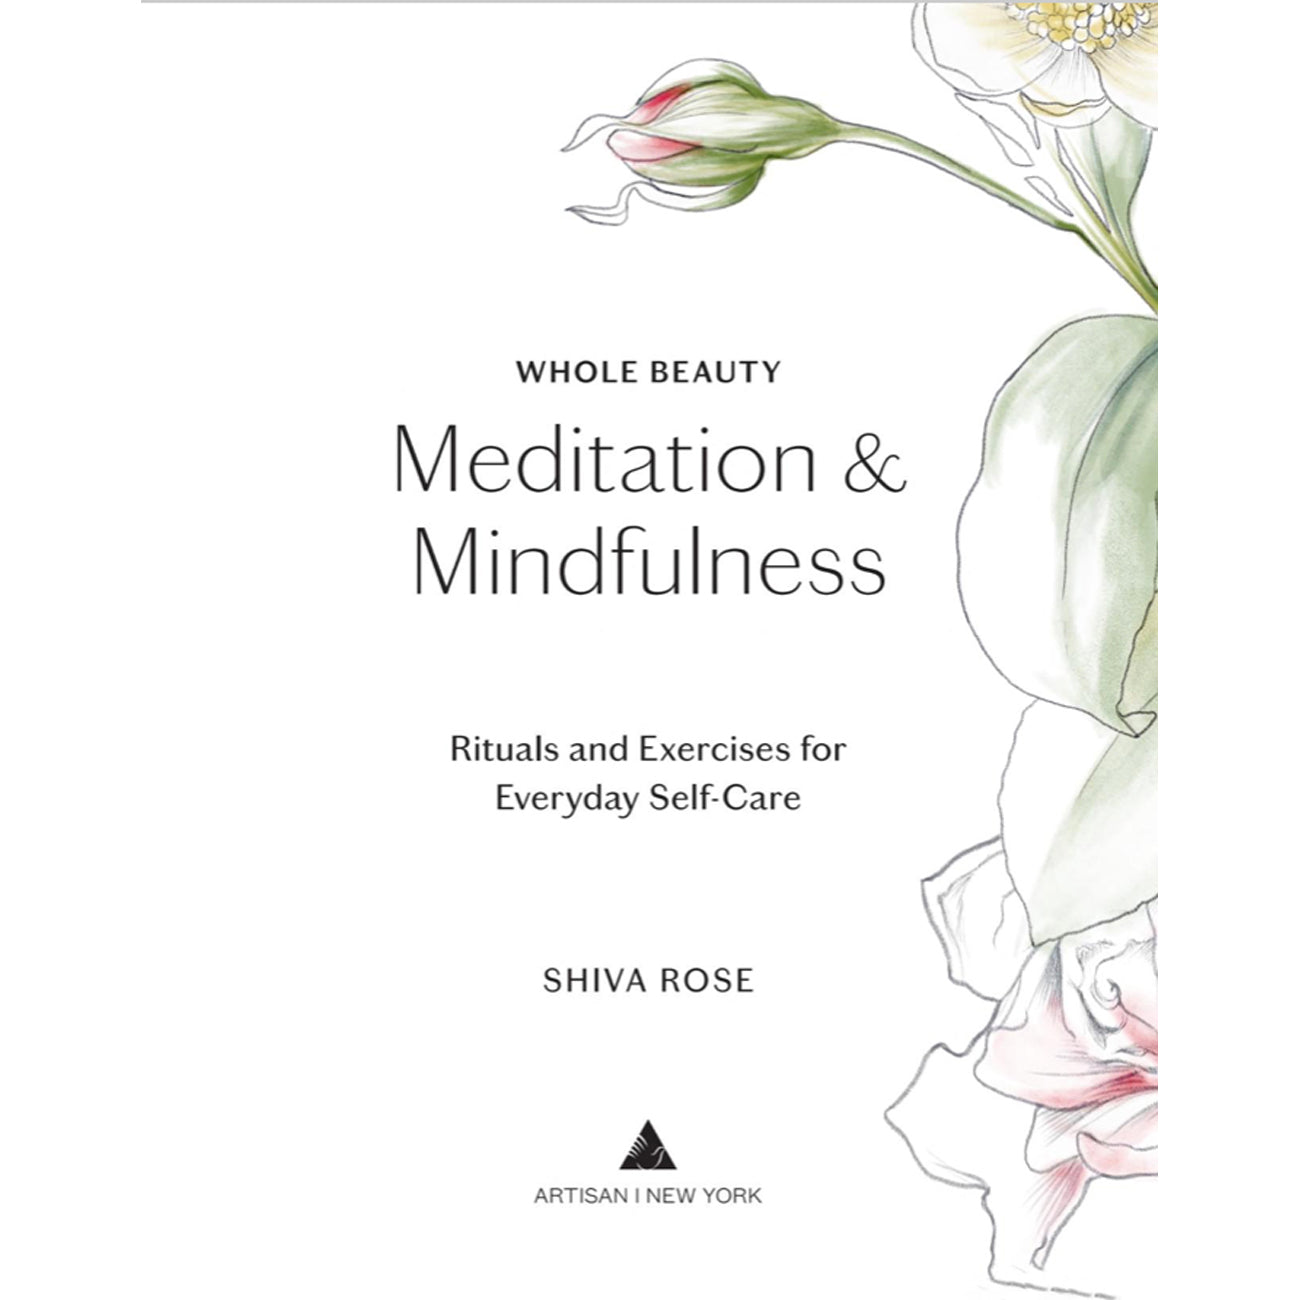 whole beauty: meditation & mindfulness